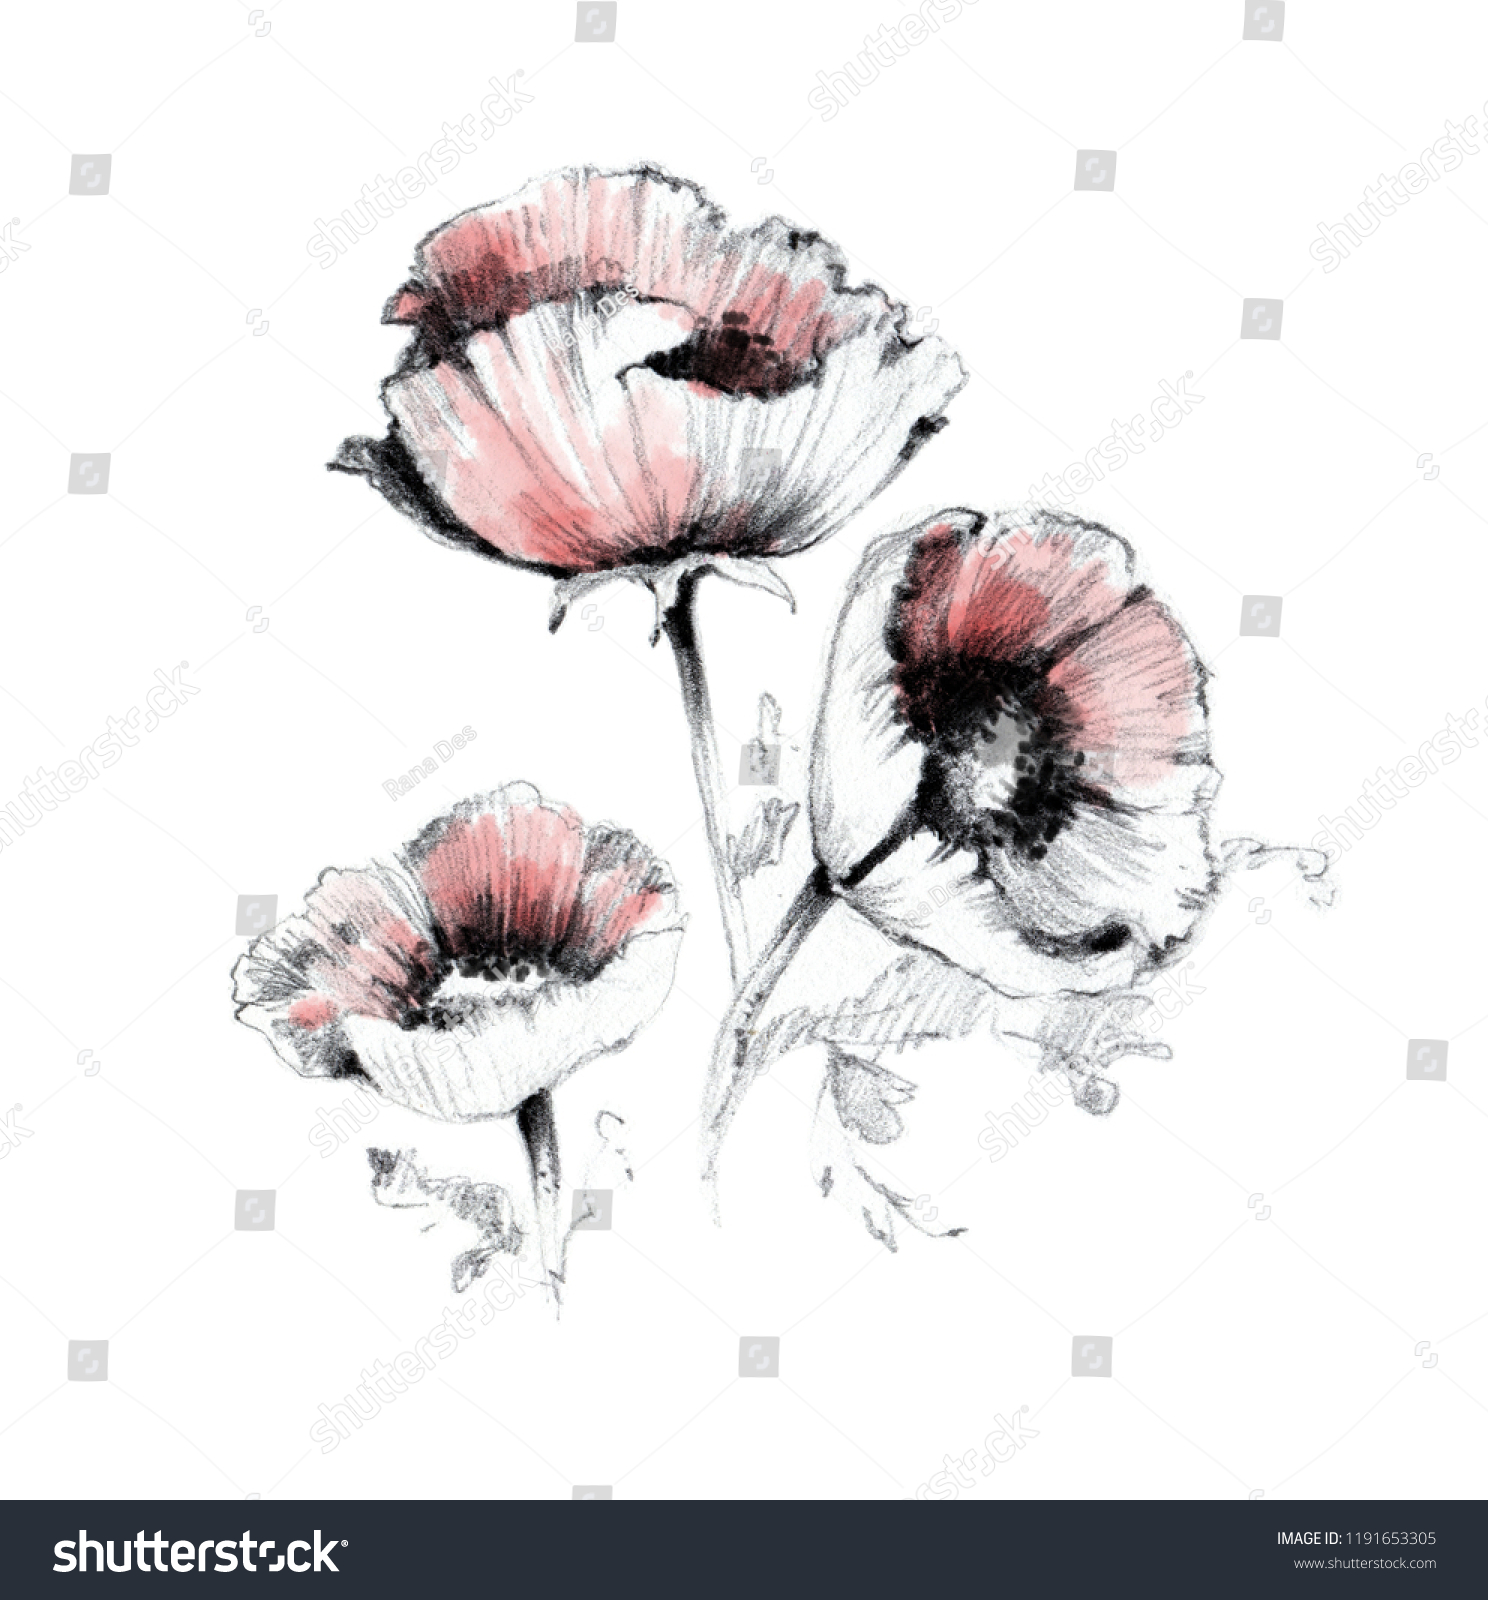 9b0879e86a8 Poppy flowers pencil with watercolor drawing sketch on paper. Botanical  floral illustration on white background